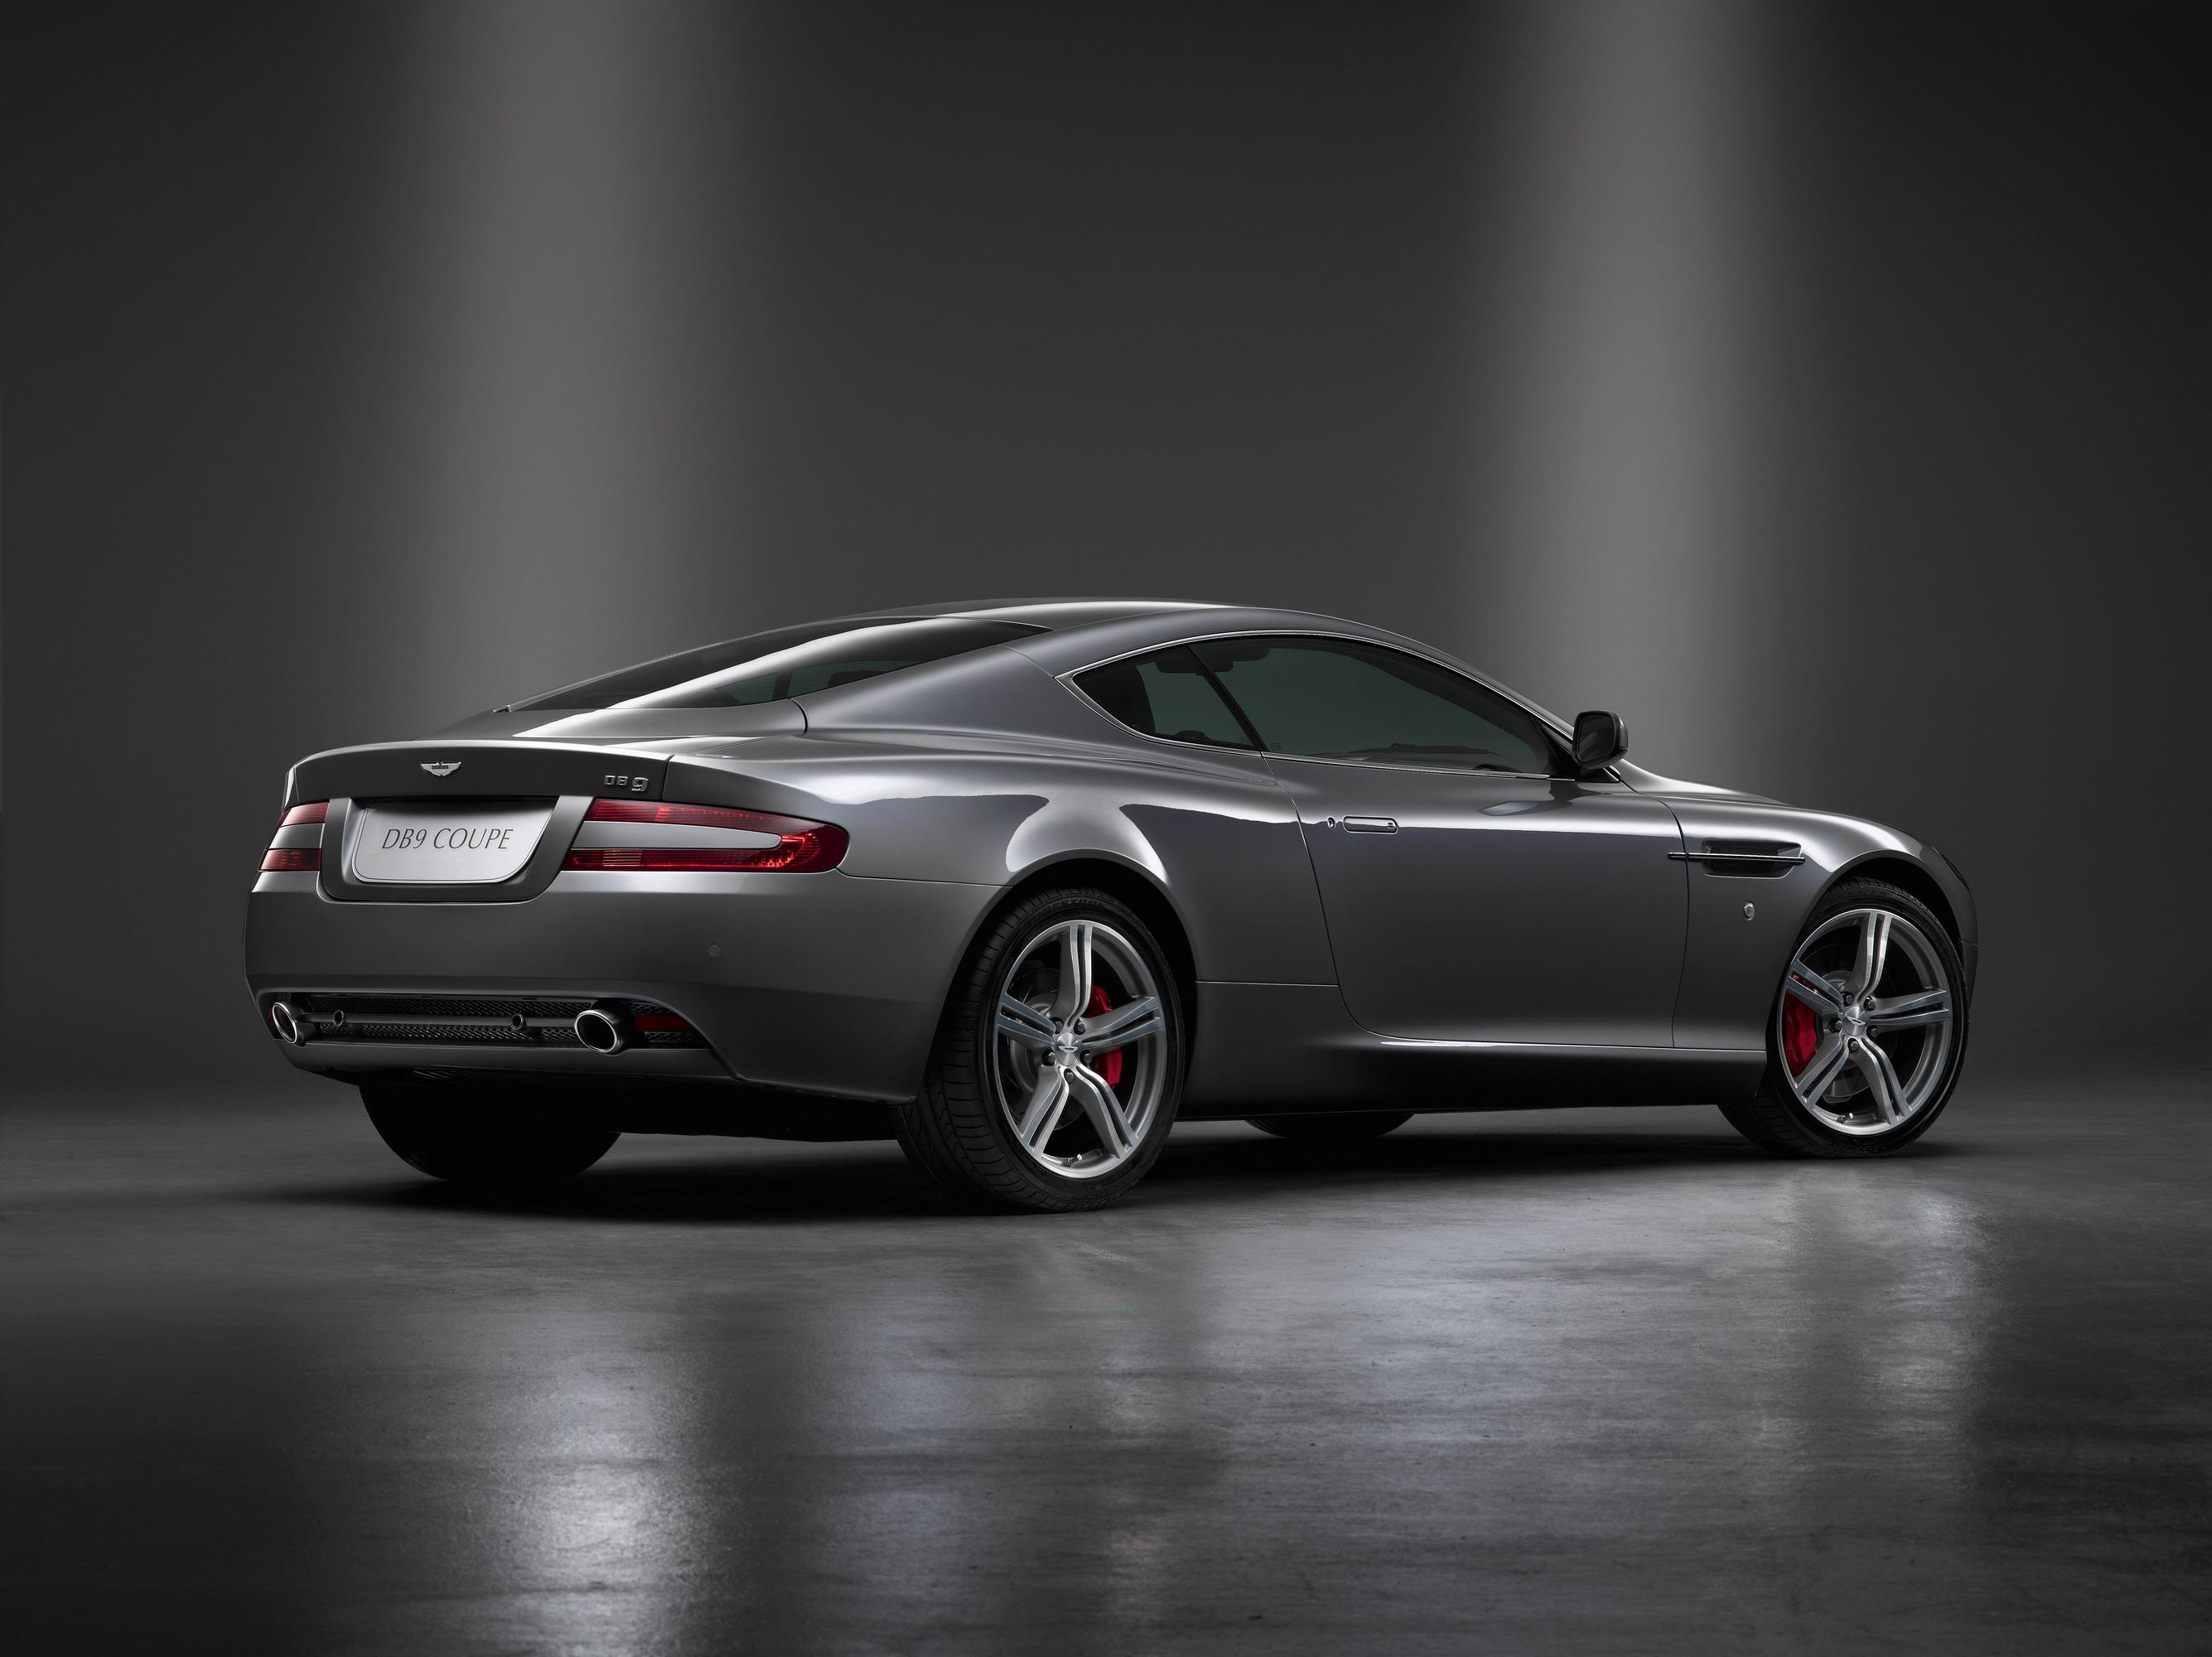 2009 aston martin db9 review - top speed